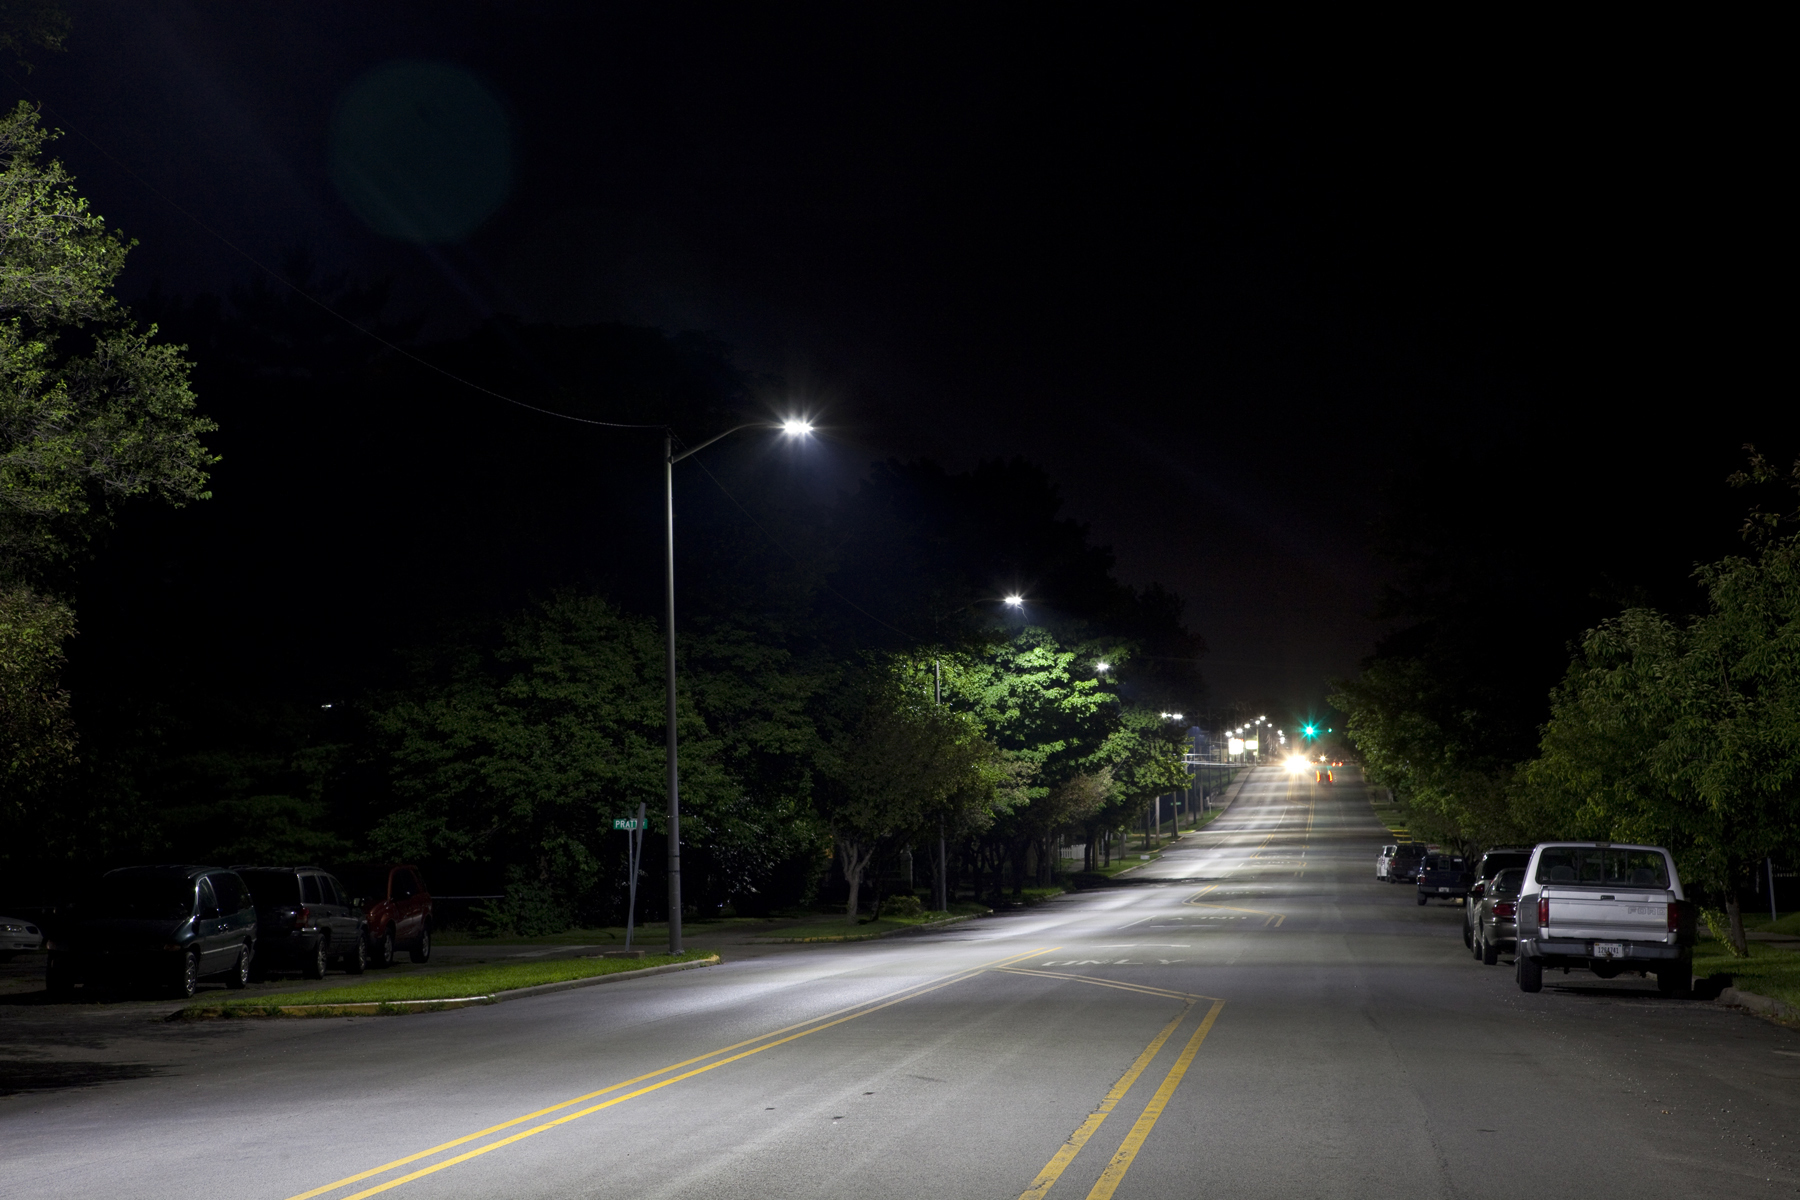 GE Lighting Christopher Augustine 216-266-3477 christopher.augustine@ge.com & GE LED Street Lighting Helps Indiana Communities Achieve Shared ...